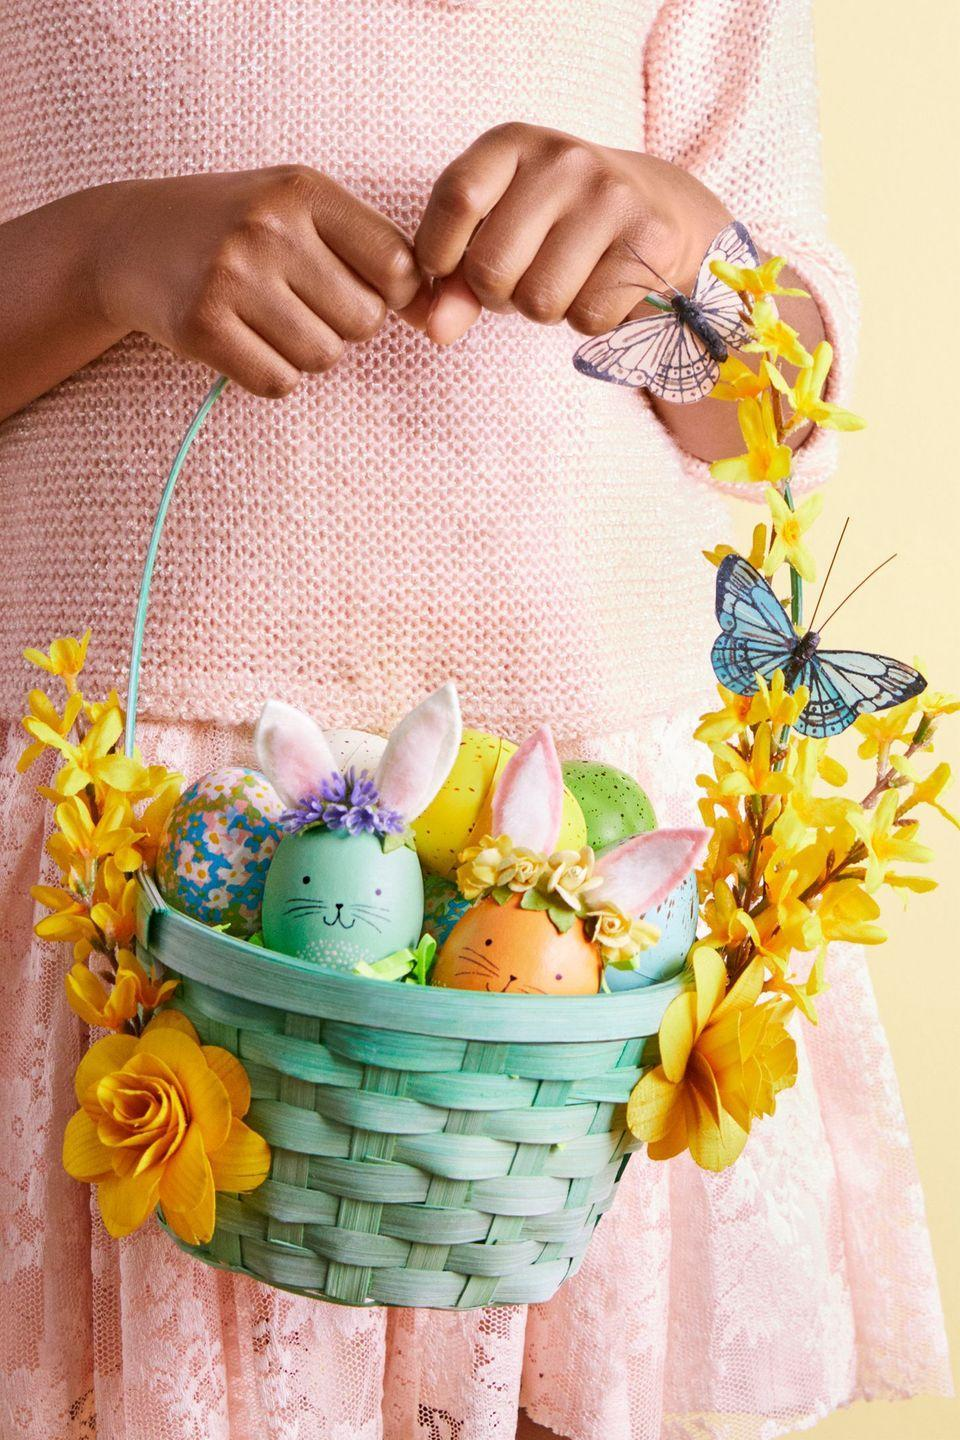 """<p>There are no better signs of warmer weather than beautiful blossoms and high-flying butterflies. Use the faux variety to embellish a bamboo basket, and fill with floral, speckled, and bunny-inspired eggs for added whimsy.</p><p><strong>Woodland Bunny:</strong> Decorate a painted egg with soft, furry ears and a floral crown. Paint a wooden egg, let dry, then add a spotted belly with white paint. Draw on a face. Use template to make ears from felt and faux-fur trim. Sandwich wire between ear pieces, then bend back the bottom 1/4 in. and use to glue in place. Glue small faux flowers around ears.</p><p><strong>Floral Egg:</strong> A dyed egg can be a blank canvas for a watercolor garden. Paint small X's with dots in the centers.</p><p><strong>Speckled Egg:</strong> Use a toothbrush to flick watered-down acrylic paint across (dry) spray-painted plastic eggs.</p><p><a class=""""link rapid-noclick-resp"""" href=""""https://www.amazon.com/BCP-25pcs-Blank-Plastic-Easter/dp/B01LWE37EP/?tag=syn-yahoo-20&ascsubtag=%5Bartid%7C10070.g.1751%5Bsrc%7Cyahoo-us"""" rel=""""nofollow noopener"""" target=""""_blank"""" data-ylk=""""slk:SHOP WHITE PLASTIC EGGS""""><strong>SHOP WHITE PLASTIC EGGS</strong> </a></p>"""